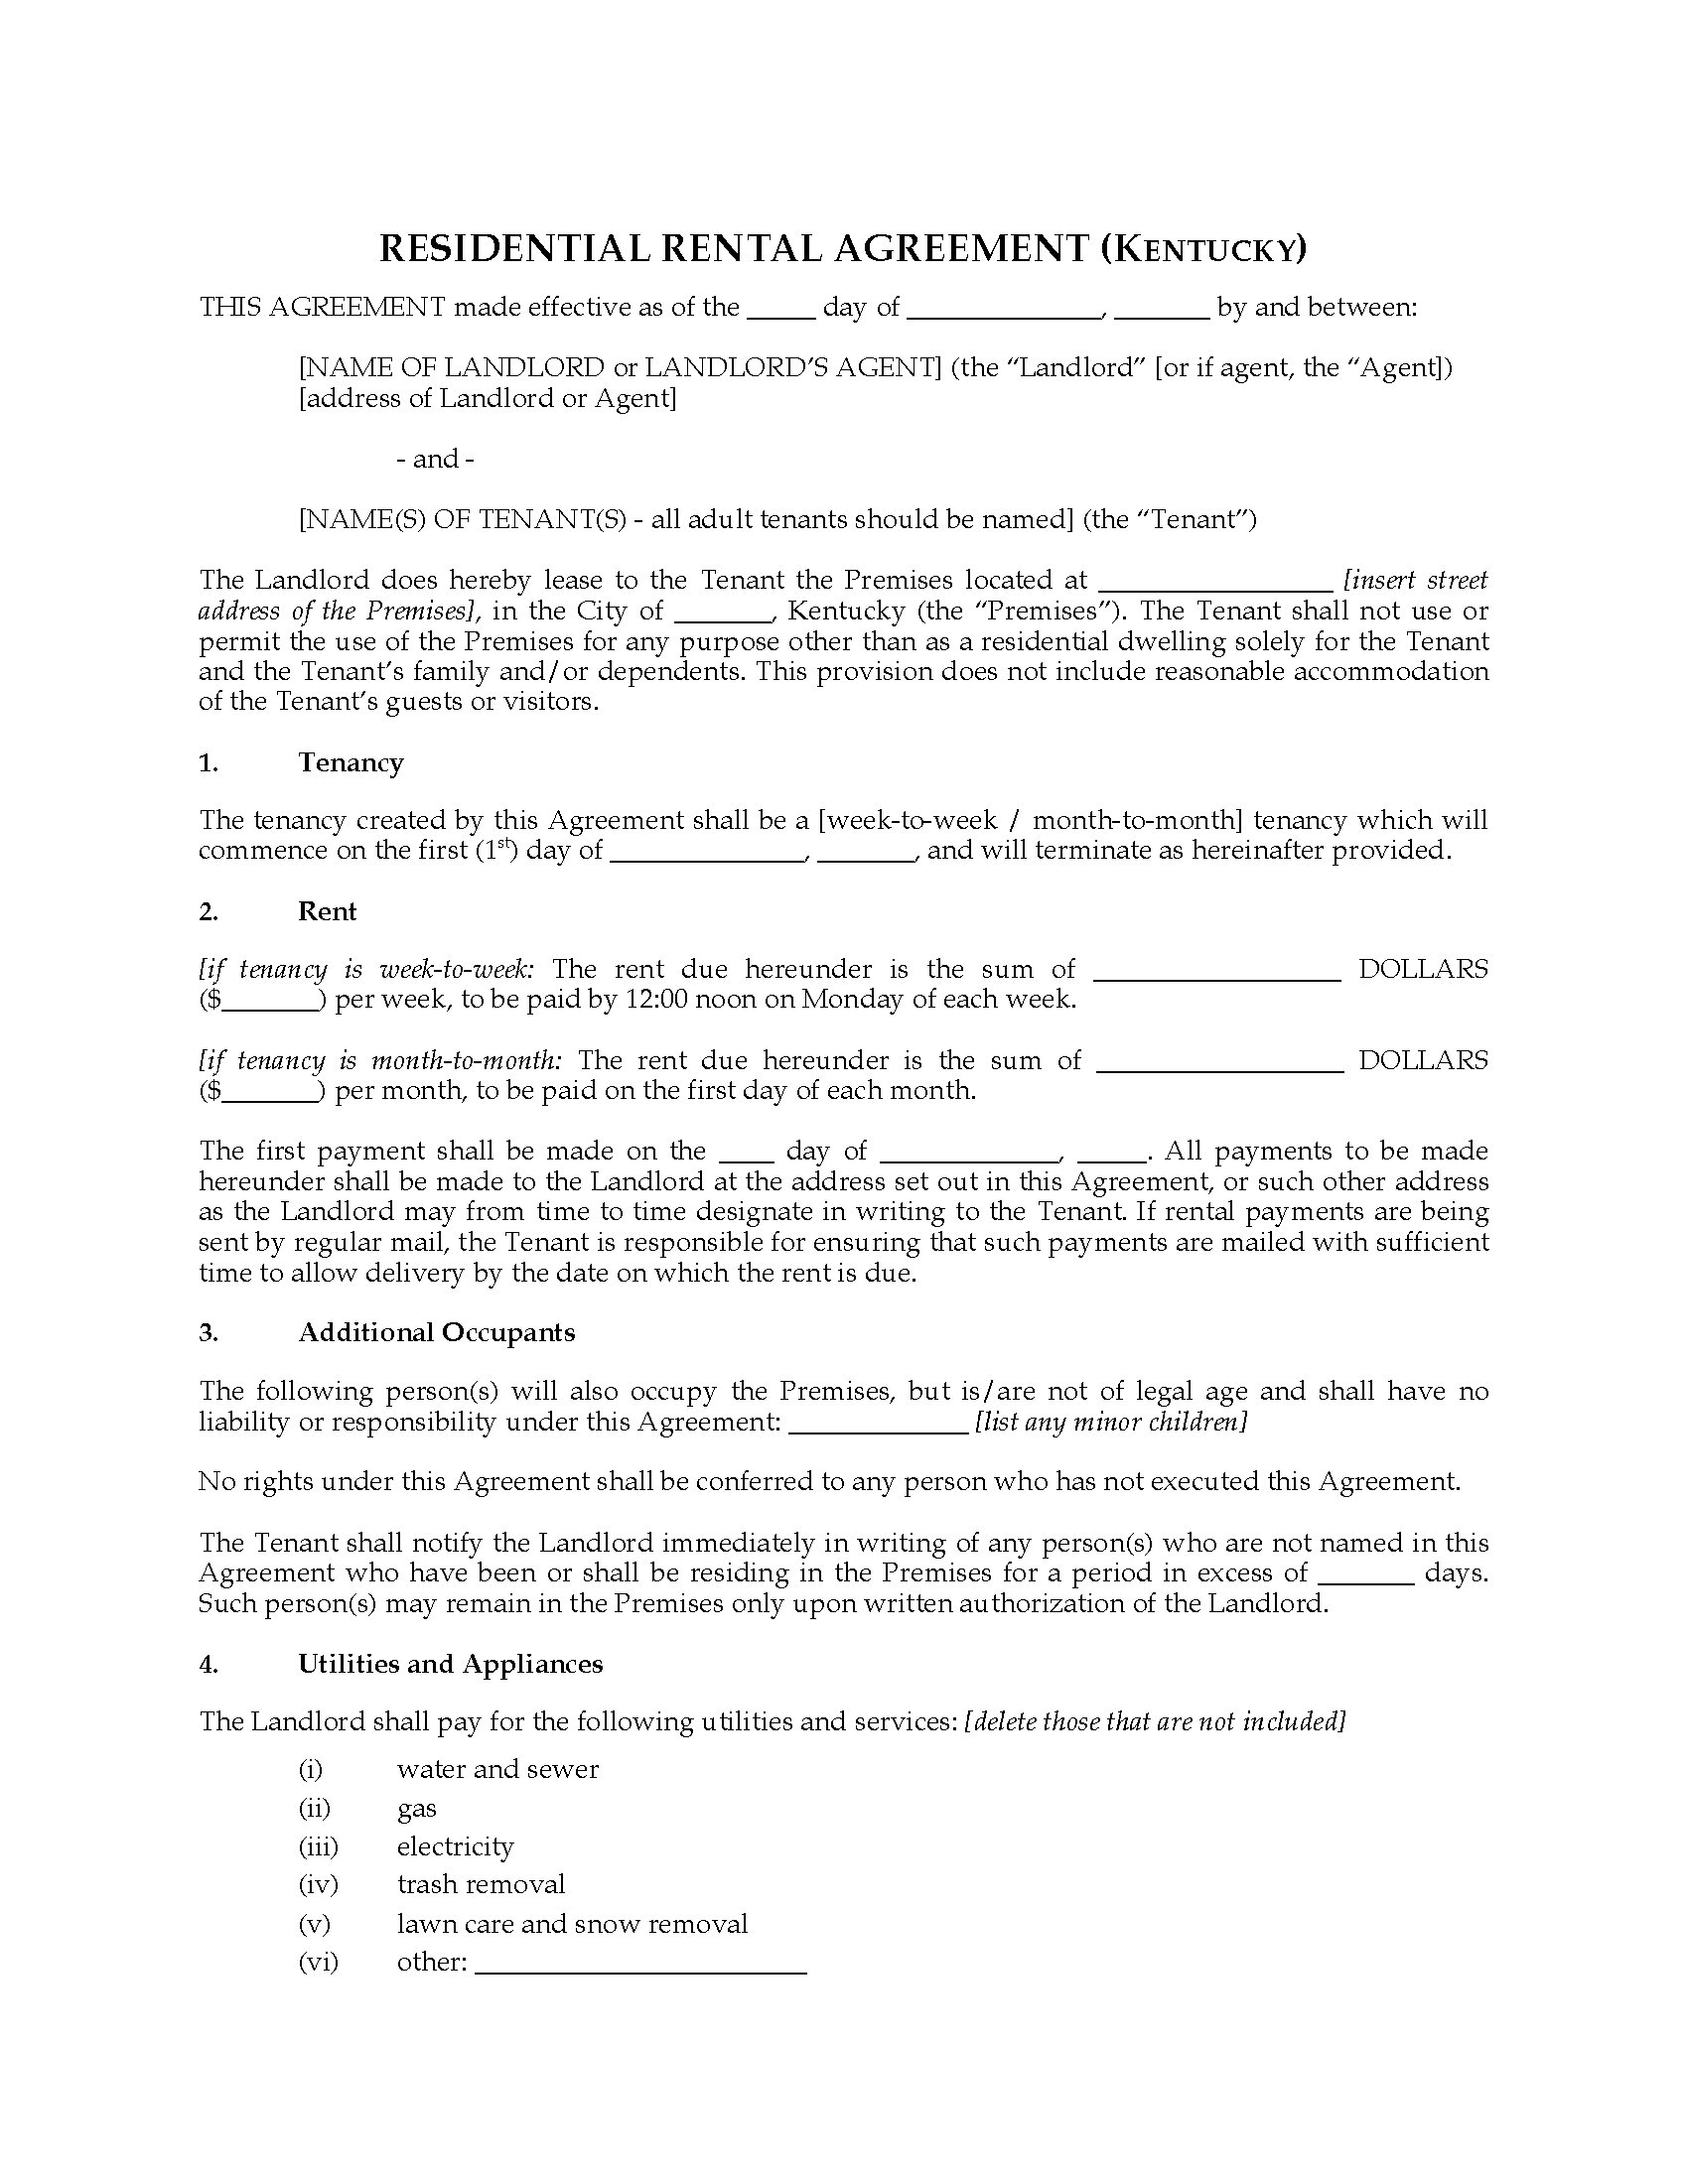 Kentucky Rental Agreement For Residential Premises Legal Forms And